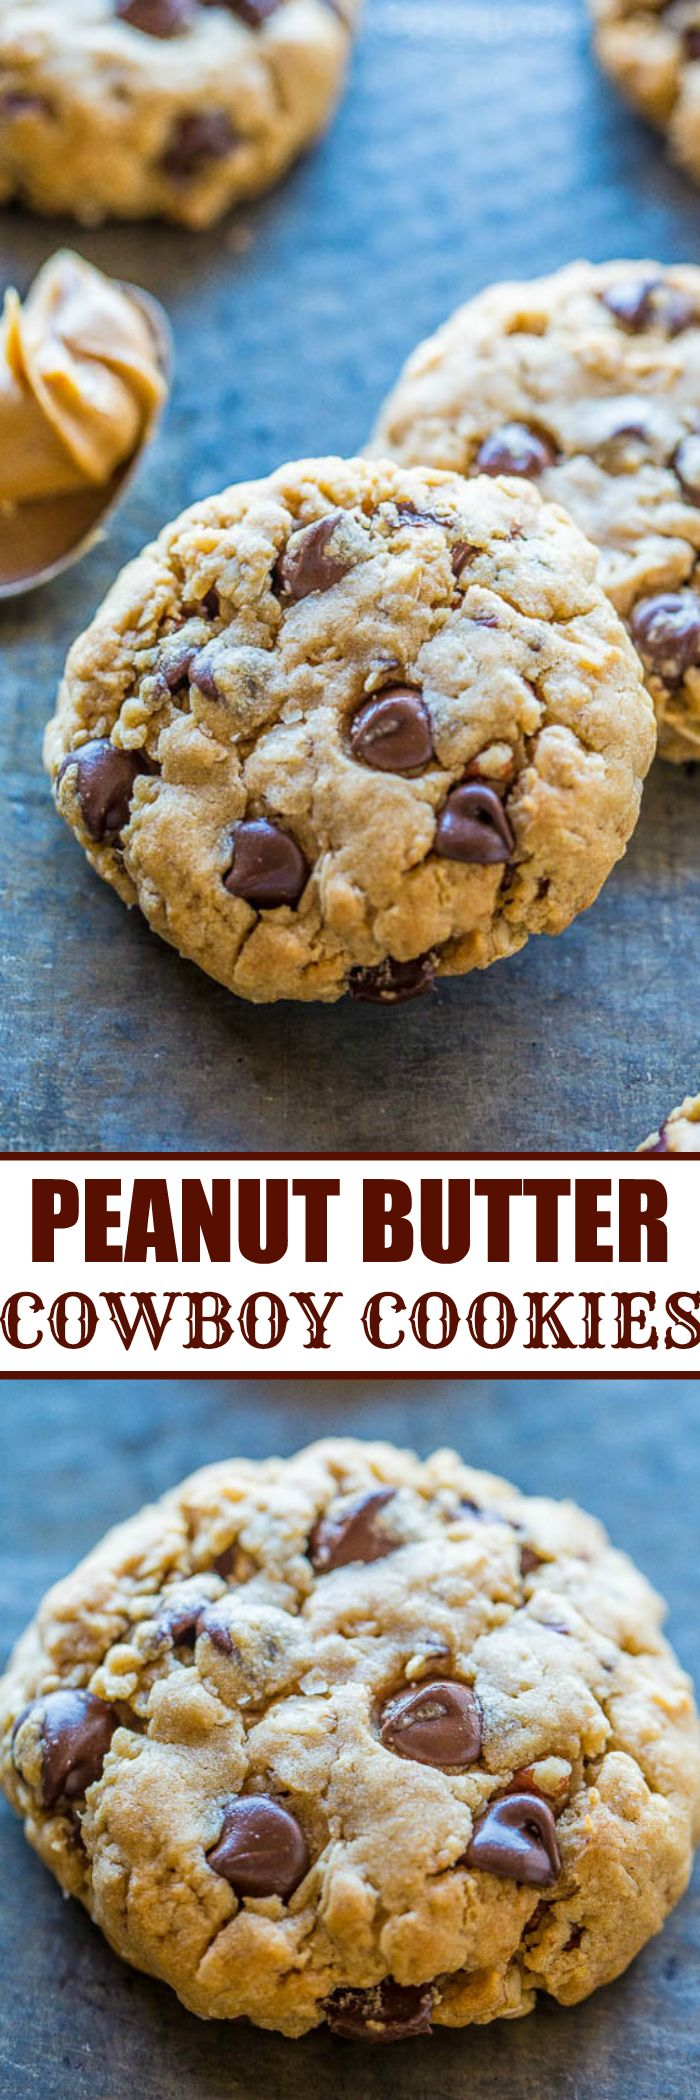 Peanut Butter Cowboy Cookies - Chewy oats, sweet coconut, crunchy pecans, peanut butter, and plenty of chocolate!! A true 'kitchen sink' cookie that stays soft and chewy! Everyone (not just cowboys) loves these cookies!! #FathersDay treat!